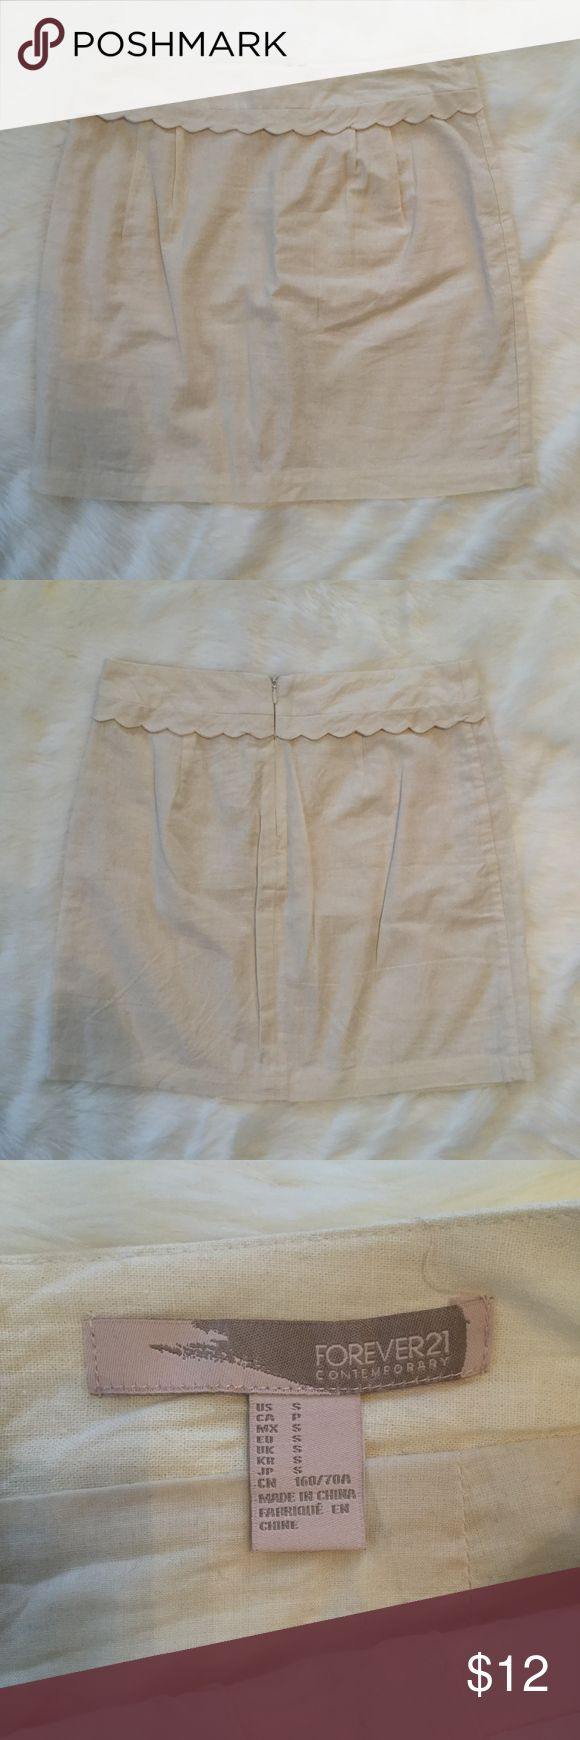 Forever 21 Scalloped Linen Skirt Size Small by Forever 21 and in excellent NWOT condition!  Color is cream, fabric has a linen feel, and a cute scallop detailing near the waistband! Forever 21 Skirts Mini